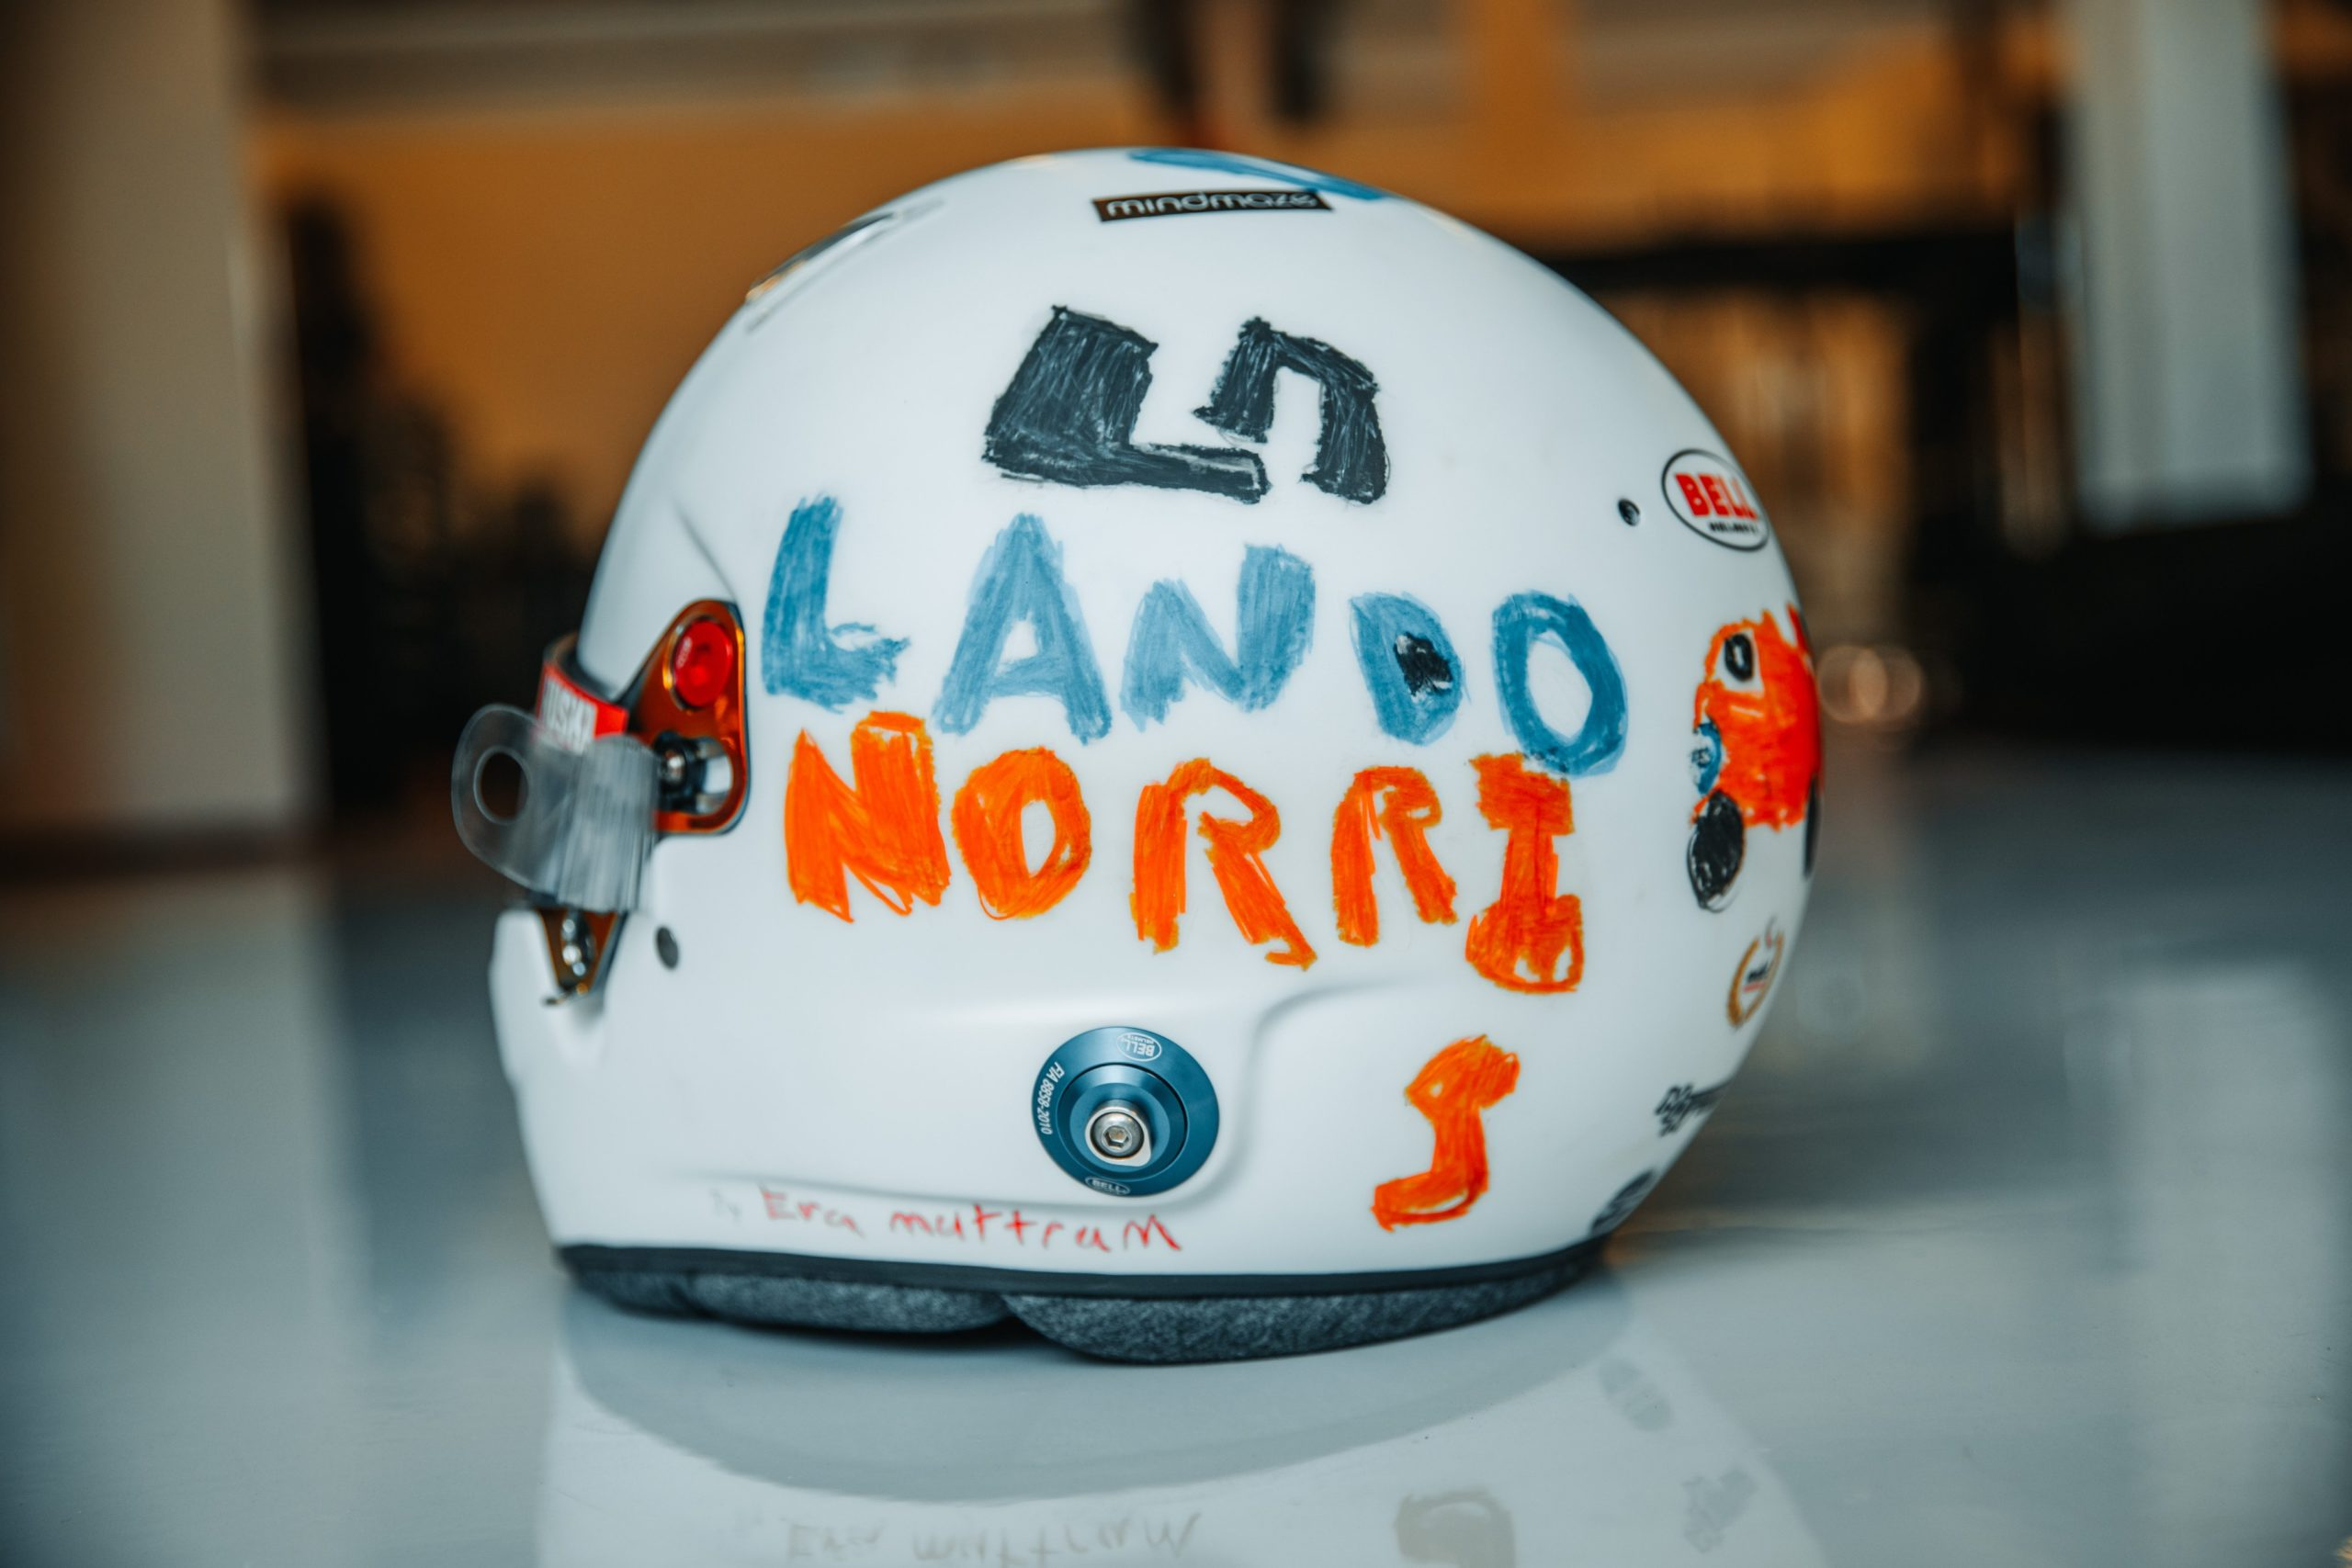 Norris to use helmet designed by six-year-old